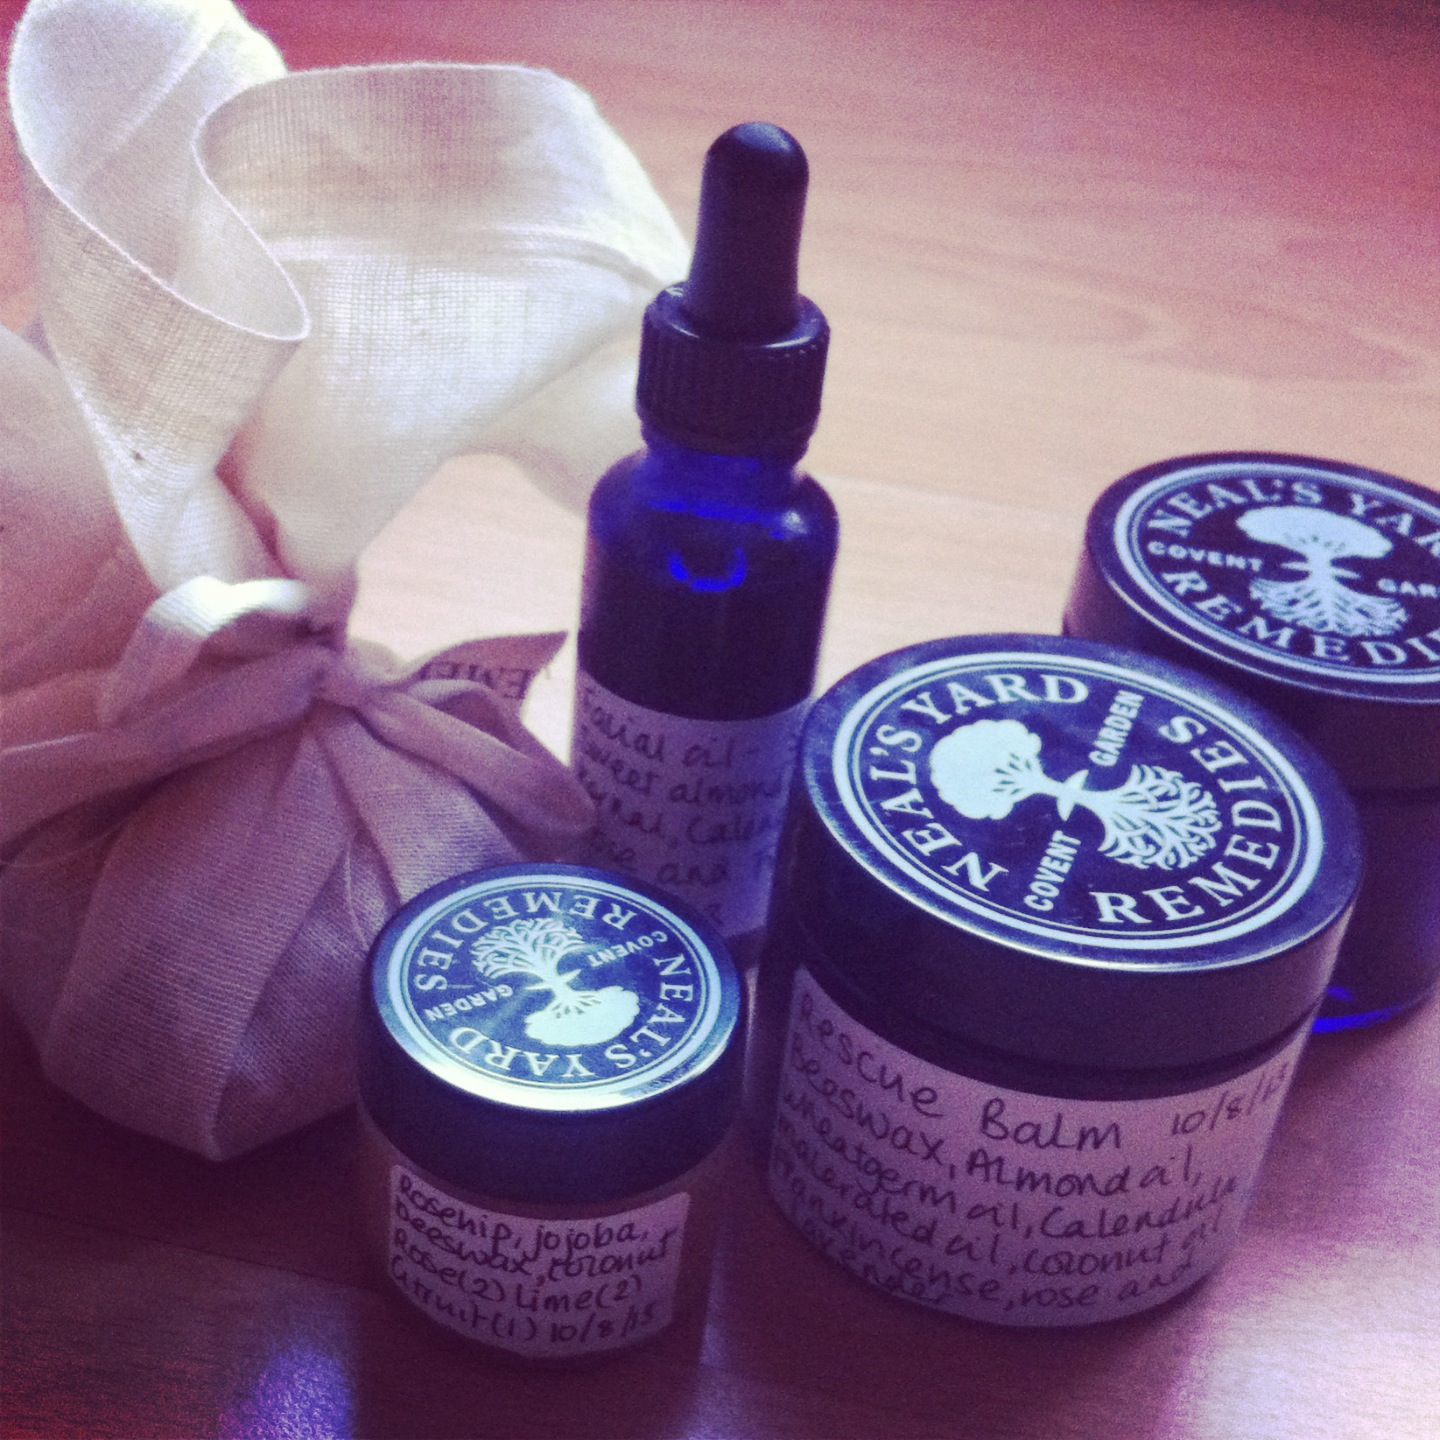 Neal's Yard Remedies – Recipes for Natural Beauty course